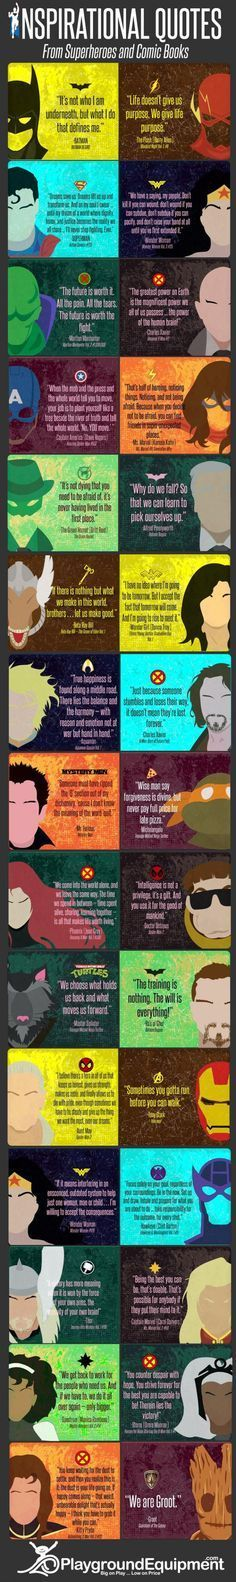 Inspirational Superhero Quotes - 9GAG